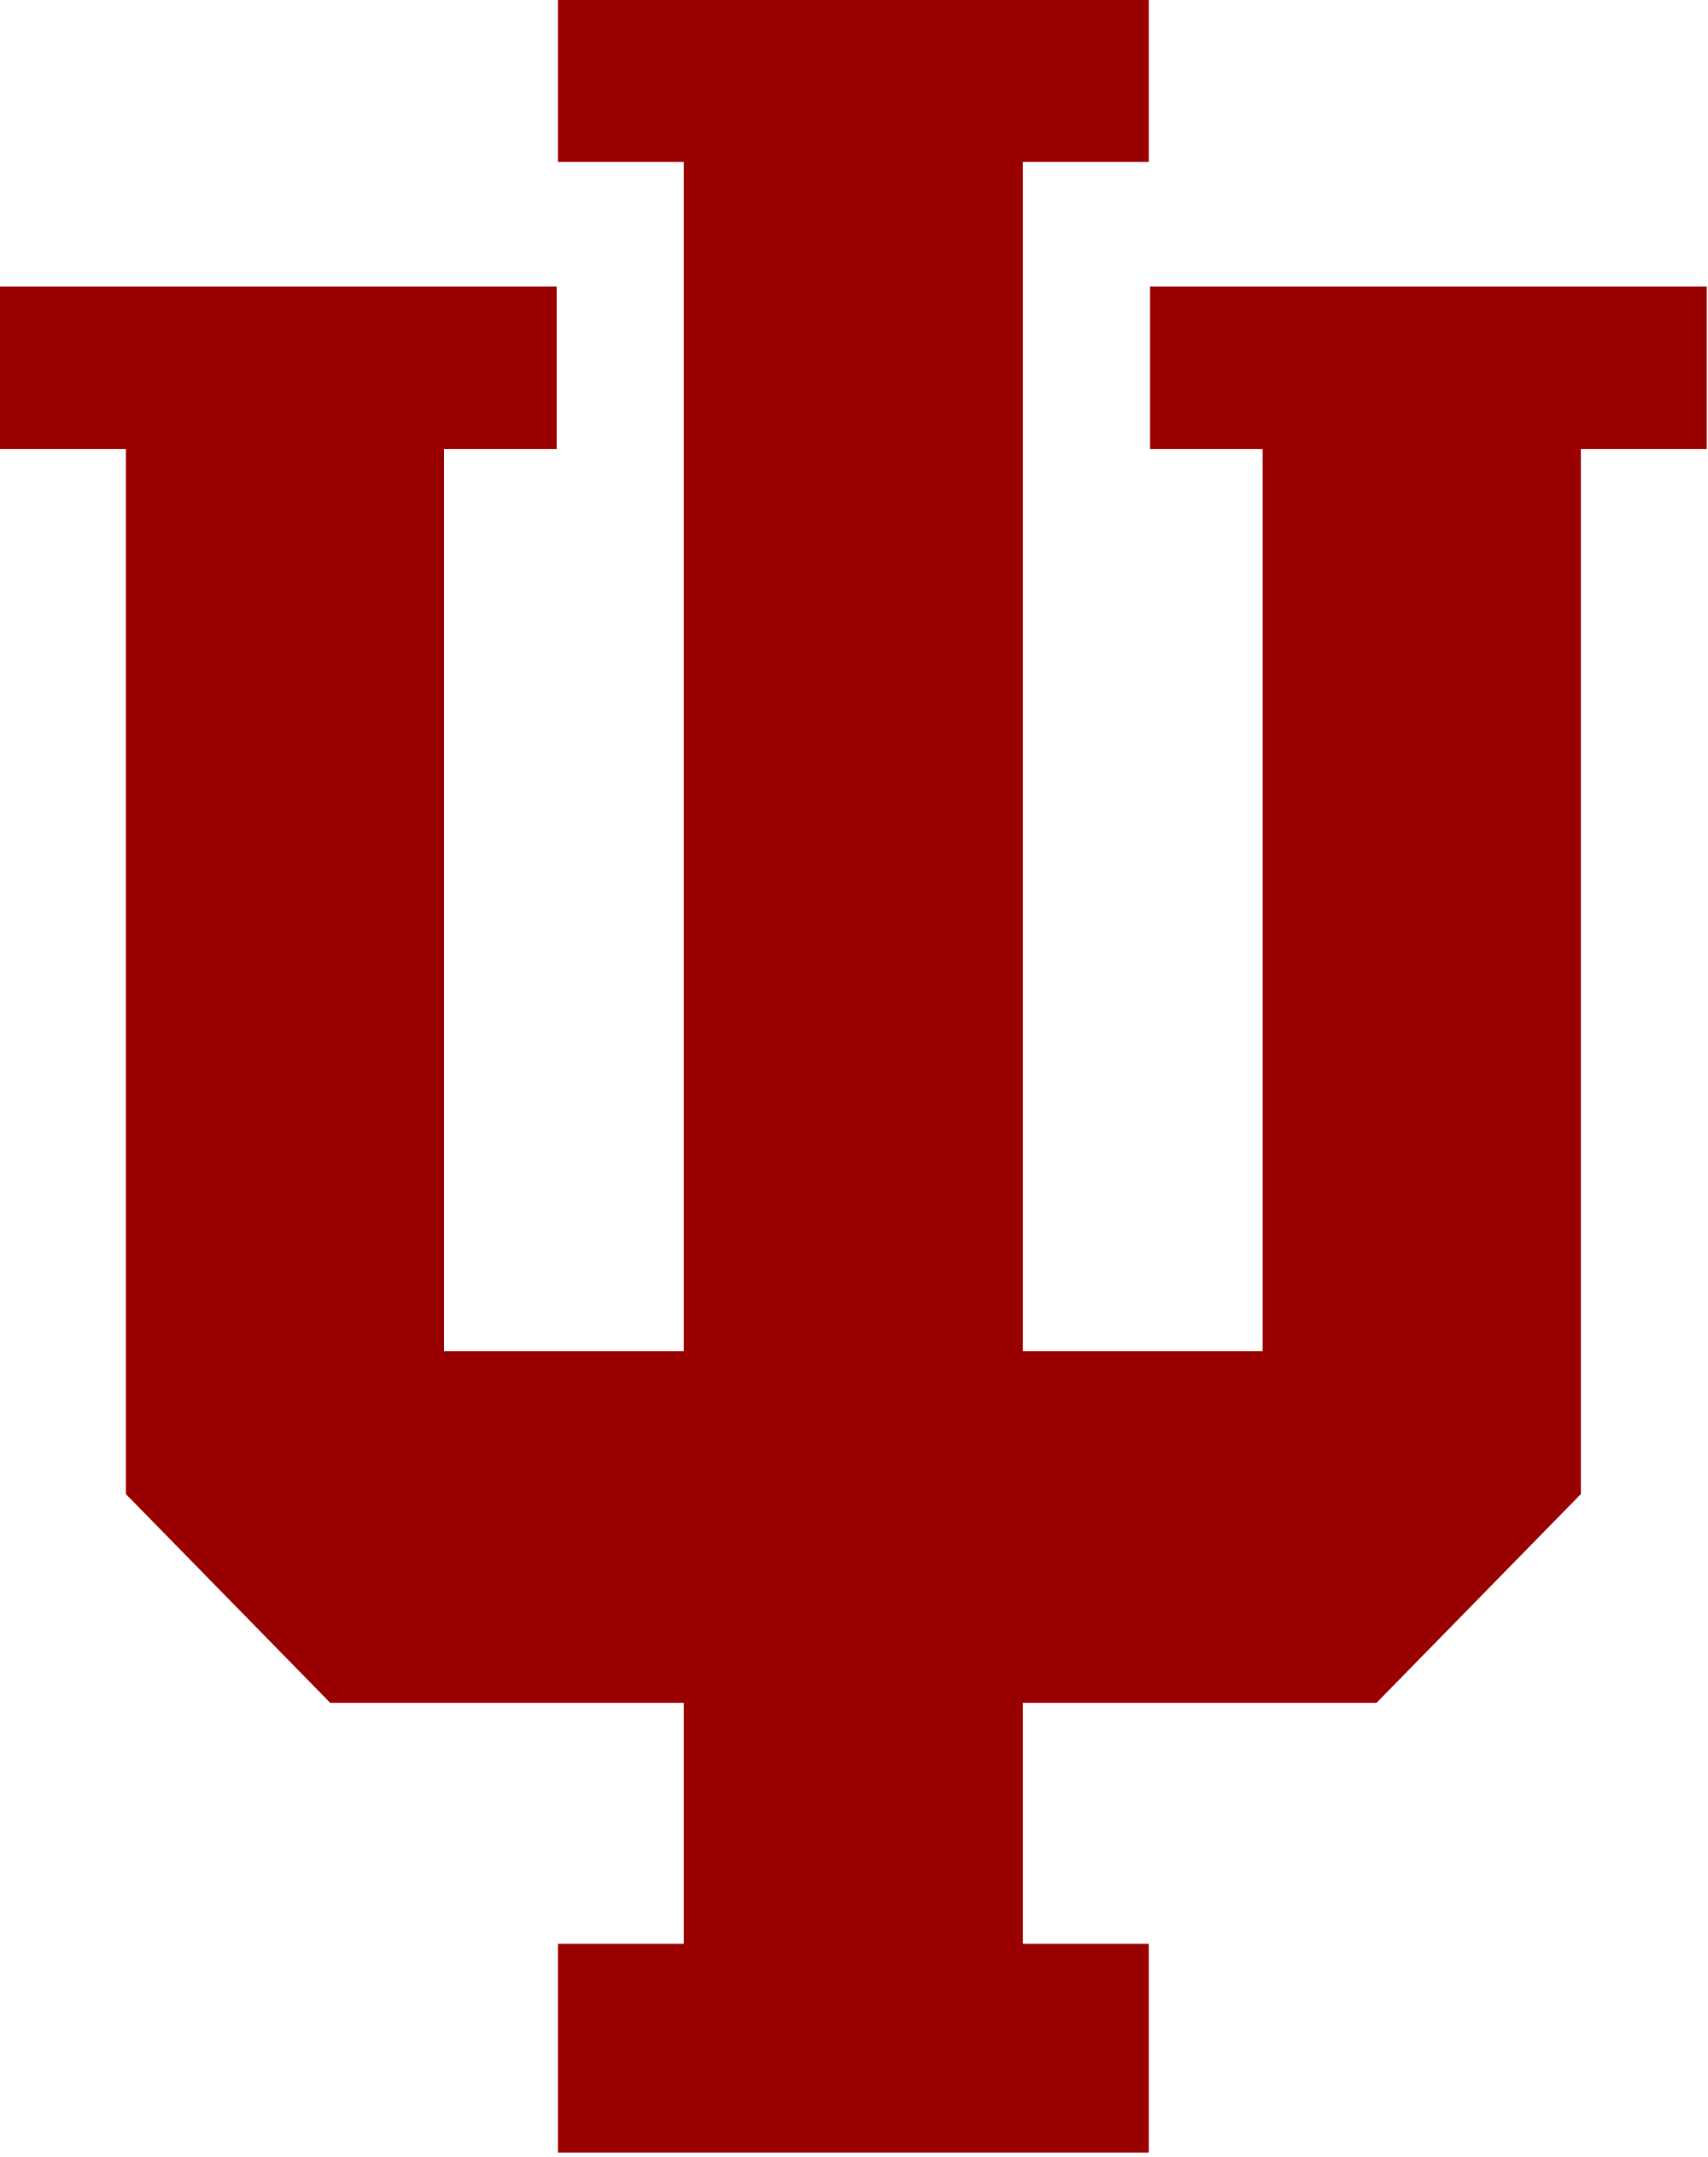 Football stat clipboard clipart clip library library Indiana Hoosiers football statistical leaders - Wikipedia clip library library